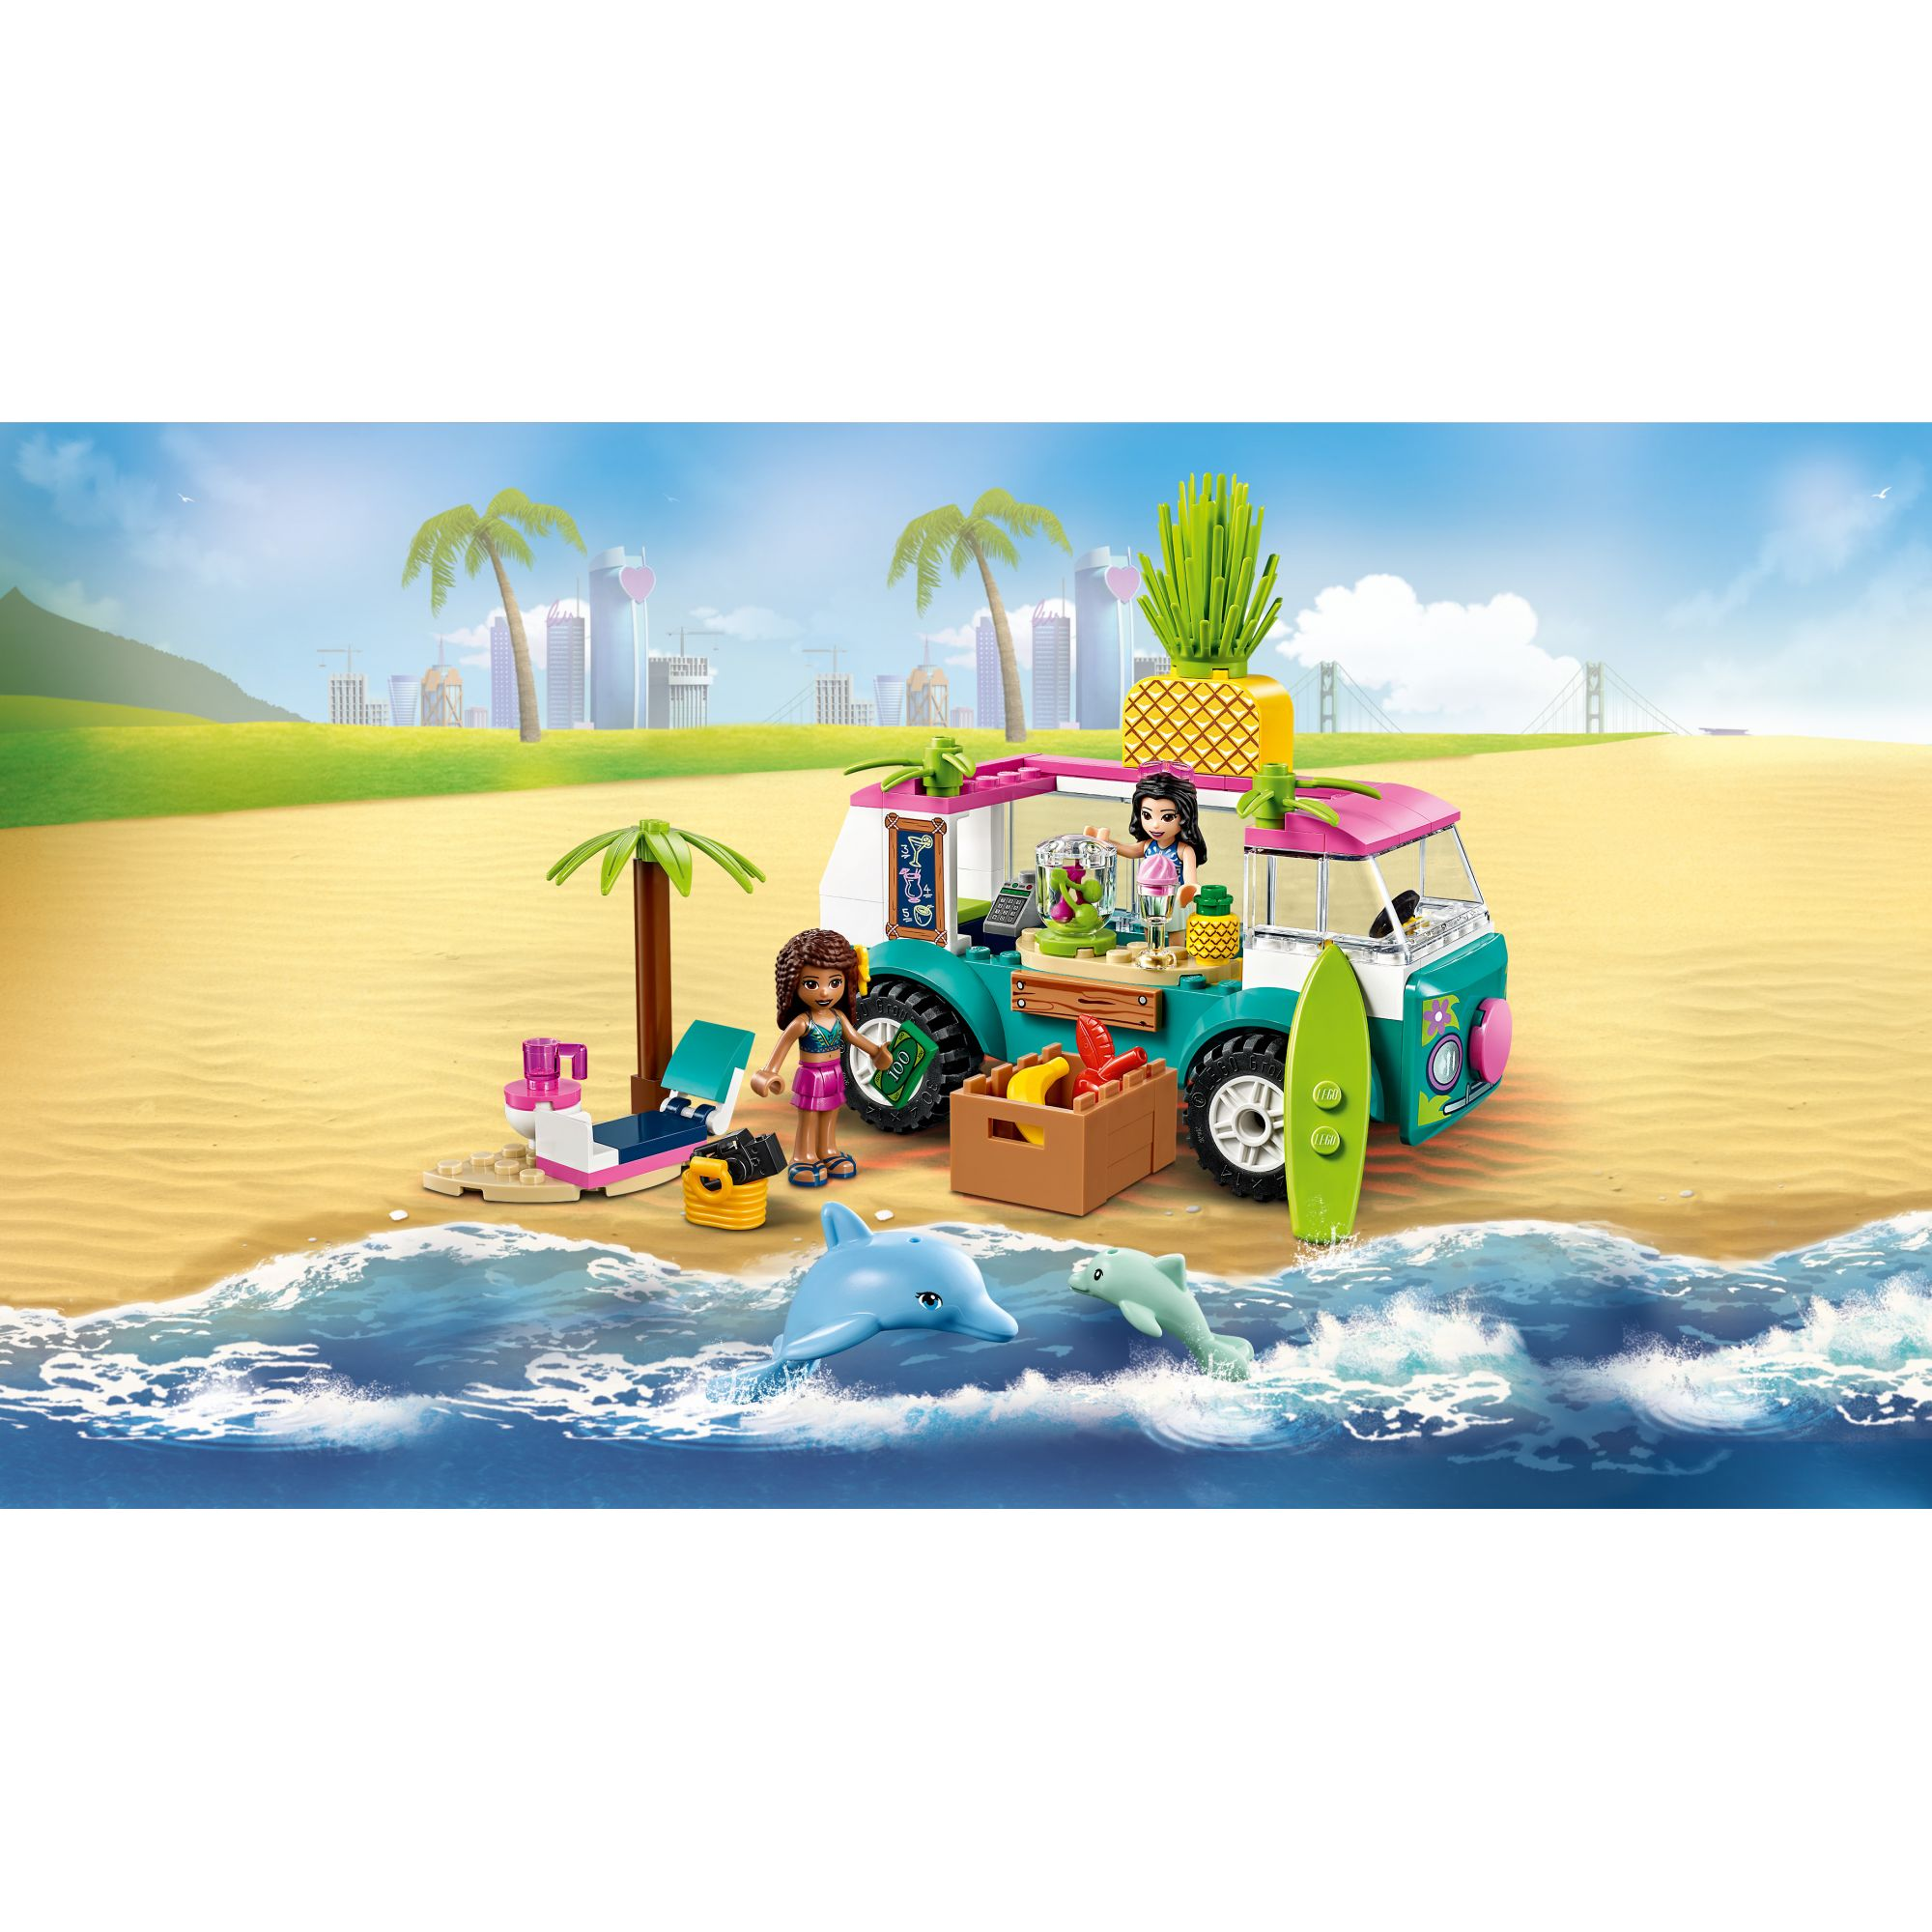 LEGO FRIENDS  LEGO Friends Il furgone dei frullati - 41397